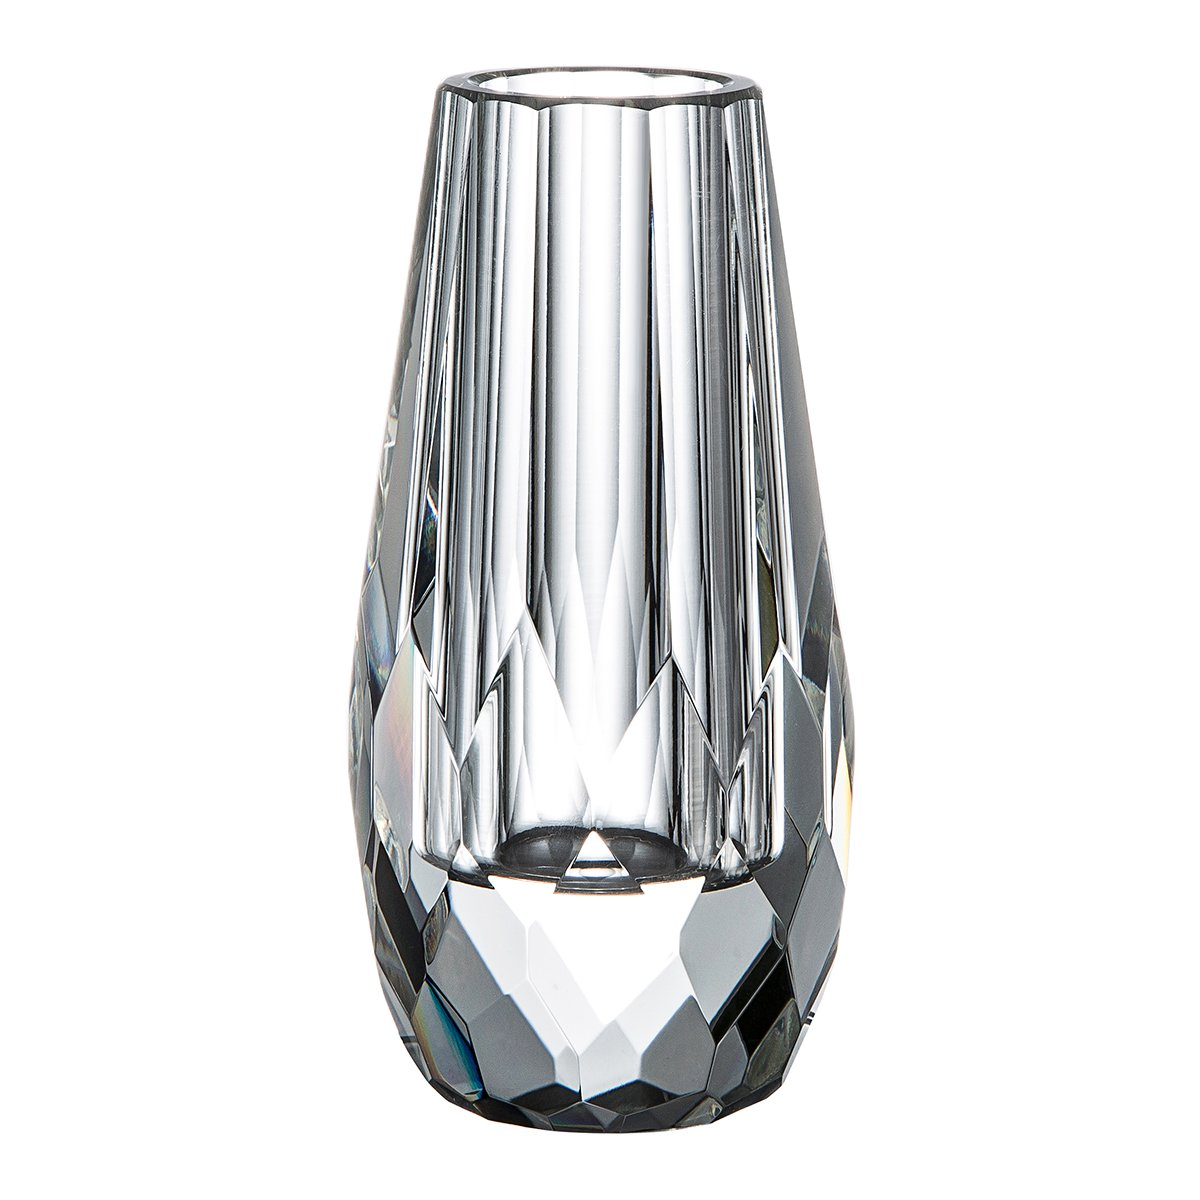 Amazon donoucls mini flower bud crystal vase decorative amazon donoucls mini flower bud crystal vase decorative centerpiece christmas decorations for home or wedding gift 24 x 48 home kitchen reviewsmspy